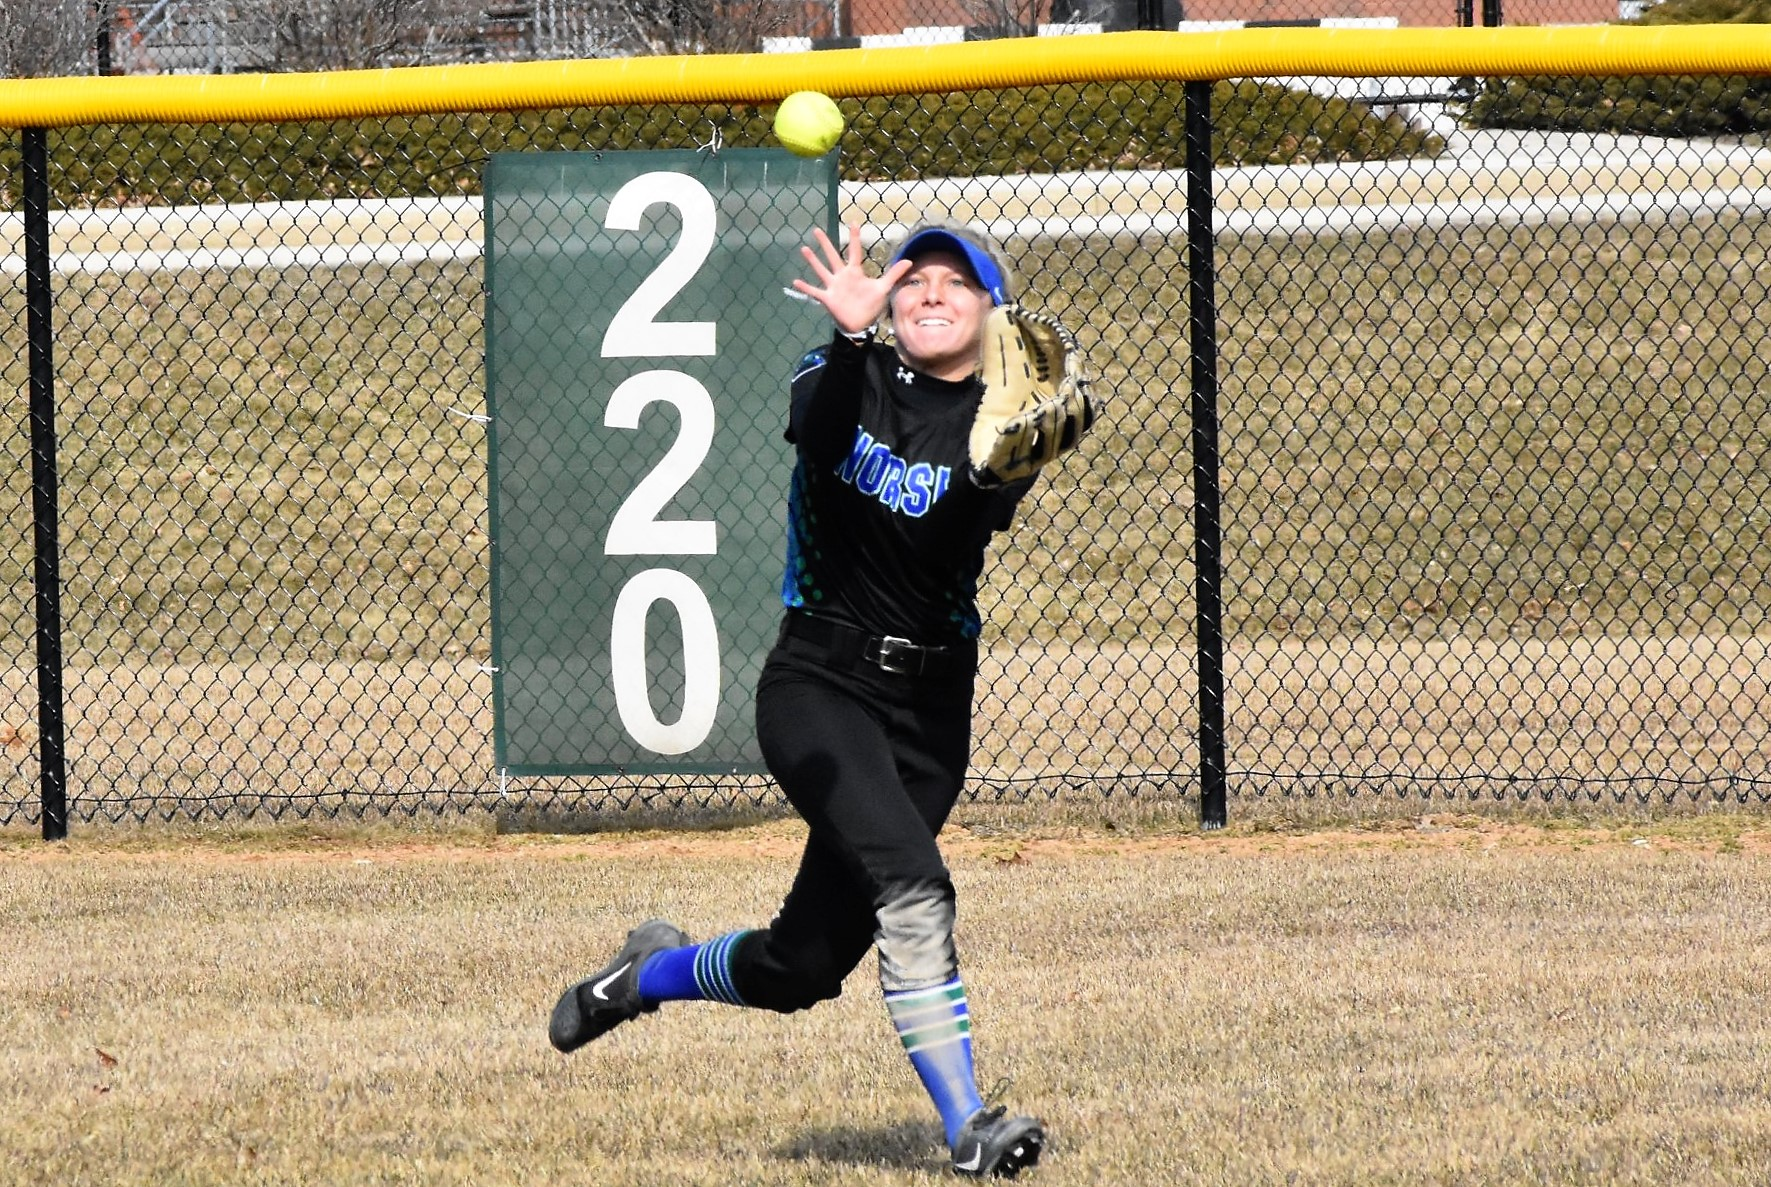 Bay Wins in Extras, Blows by Wisconsin Lutheran in Nightcap